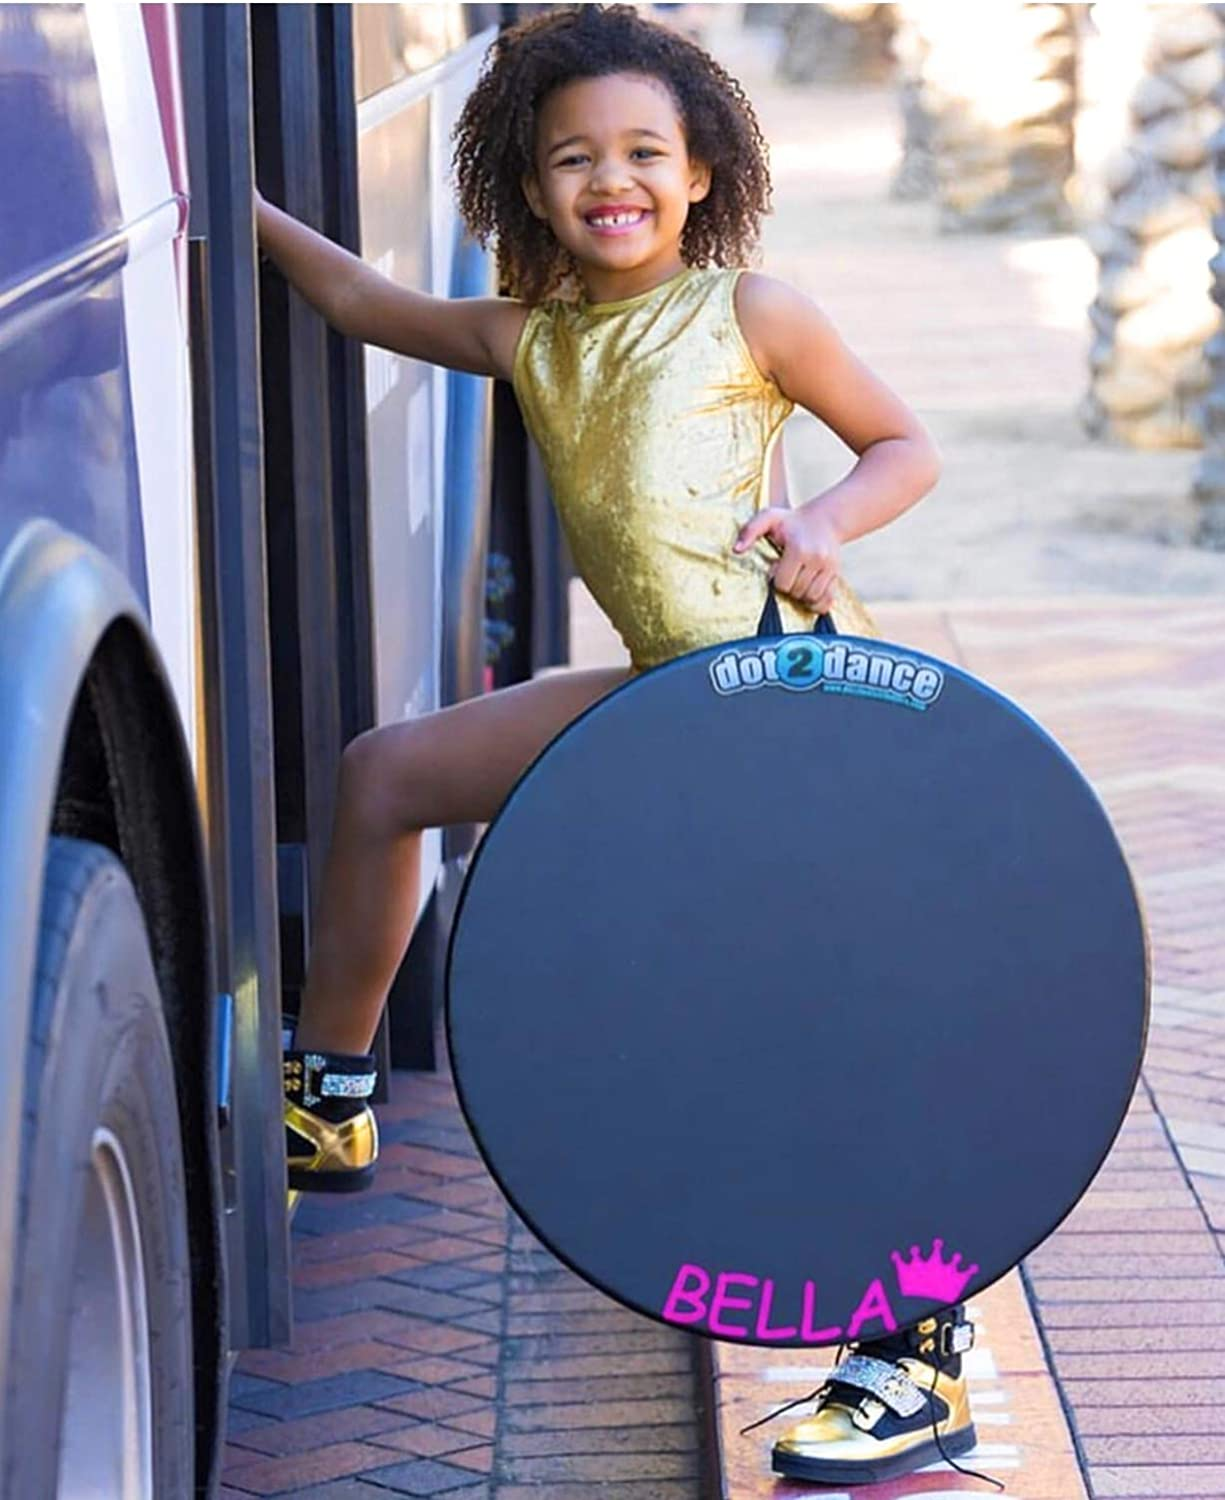 Multi-Use with Gym MAT Back dot2dance,Genuine Brand 4 Sizes Turn Board,Tap Board /& Beyond.Its Your Safe SPOT on a Authentic Marley DOT Authentic Marley Portable Dance Floor